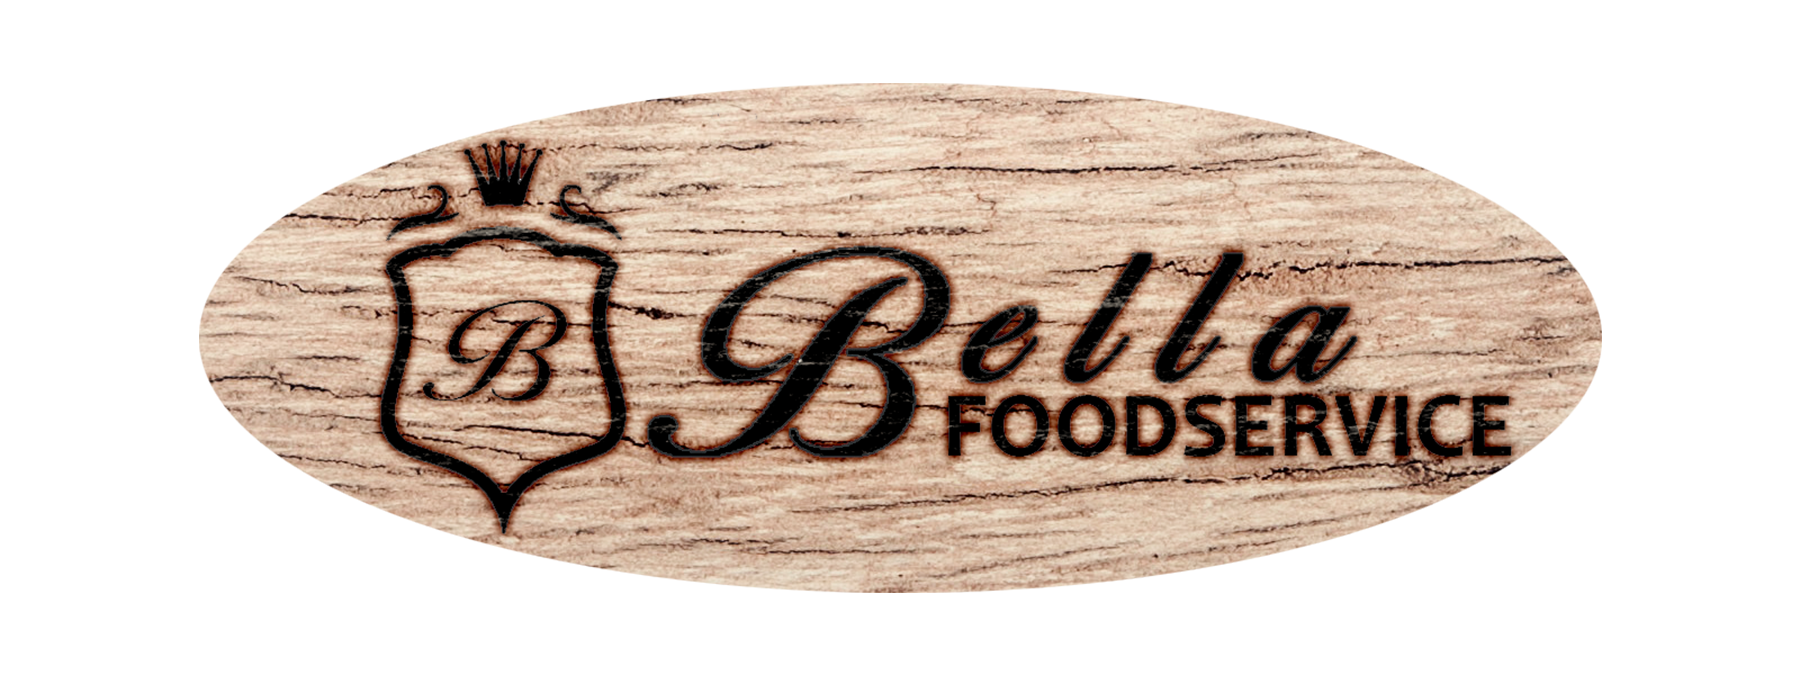 Bella Food Service